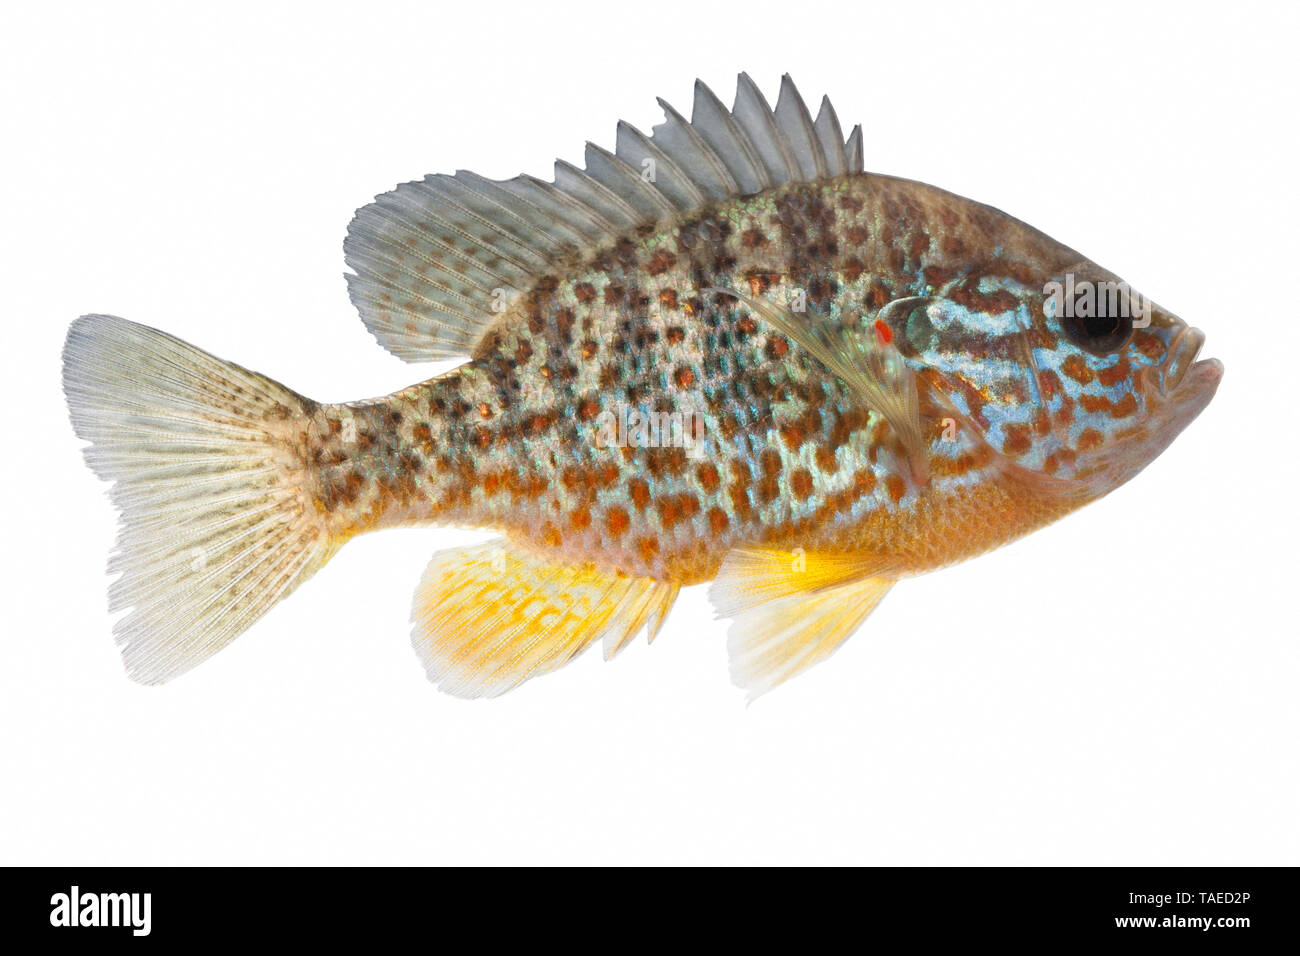 Pumpkinseed (Lepomis gibbosus) on white background, Sewen Lake, Doller Valley, Alsace, France - Stock Image